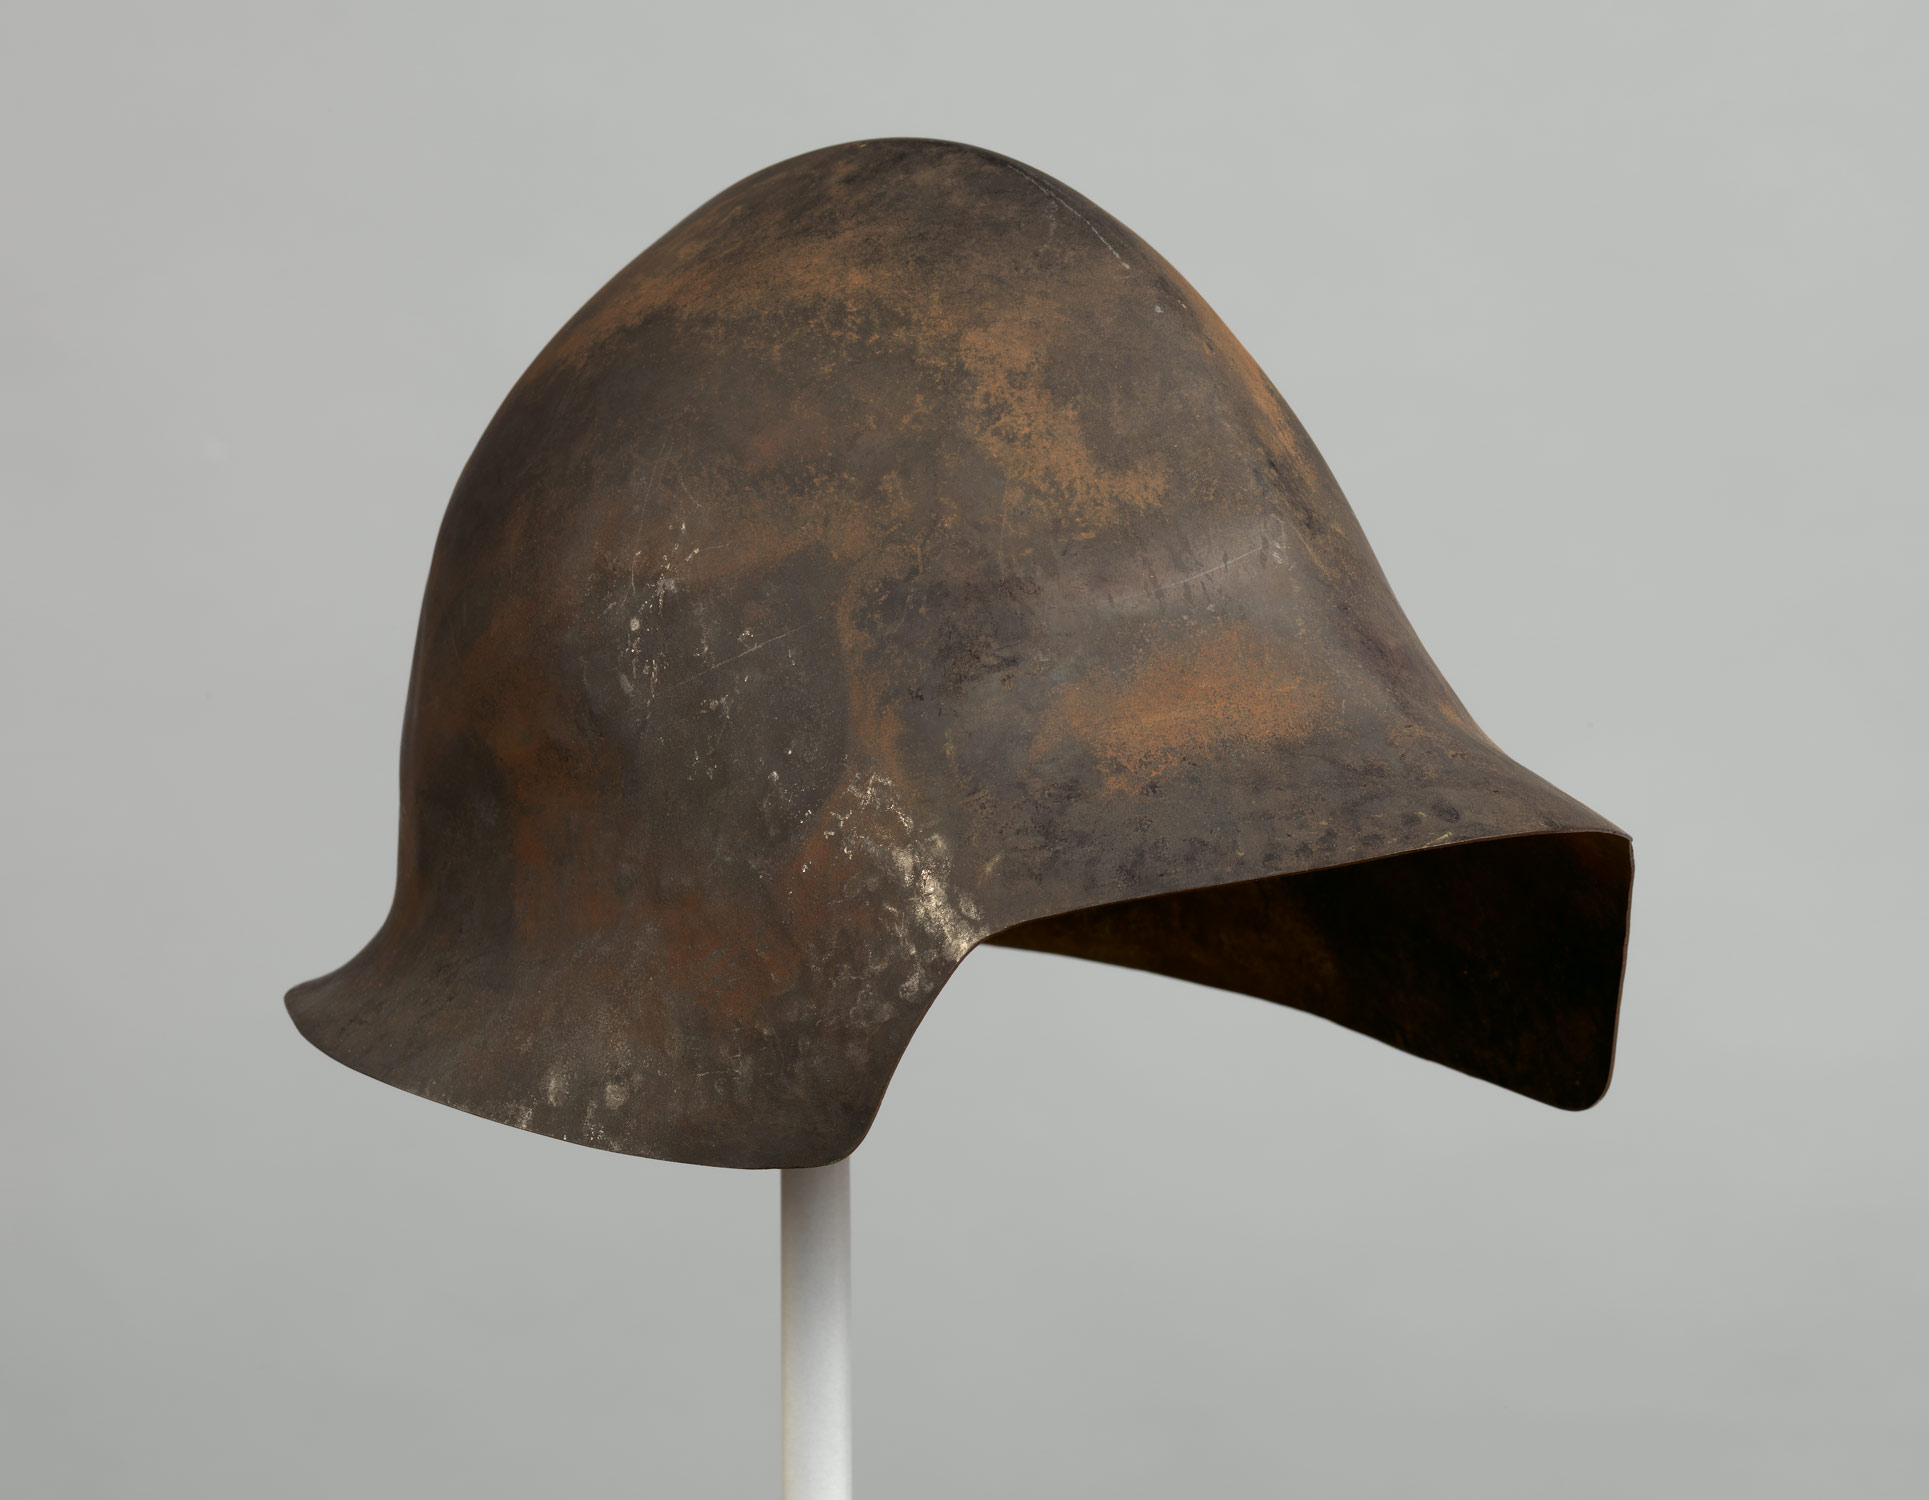 Prototype for Helmet Model No. 2